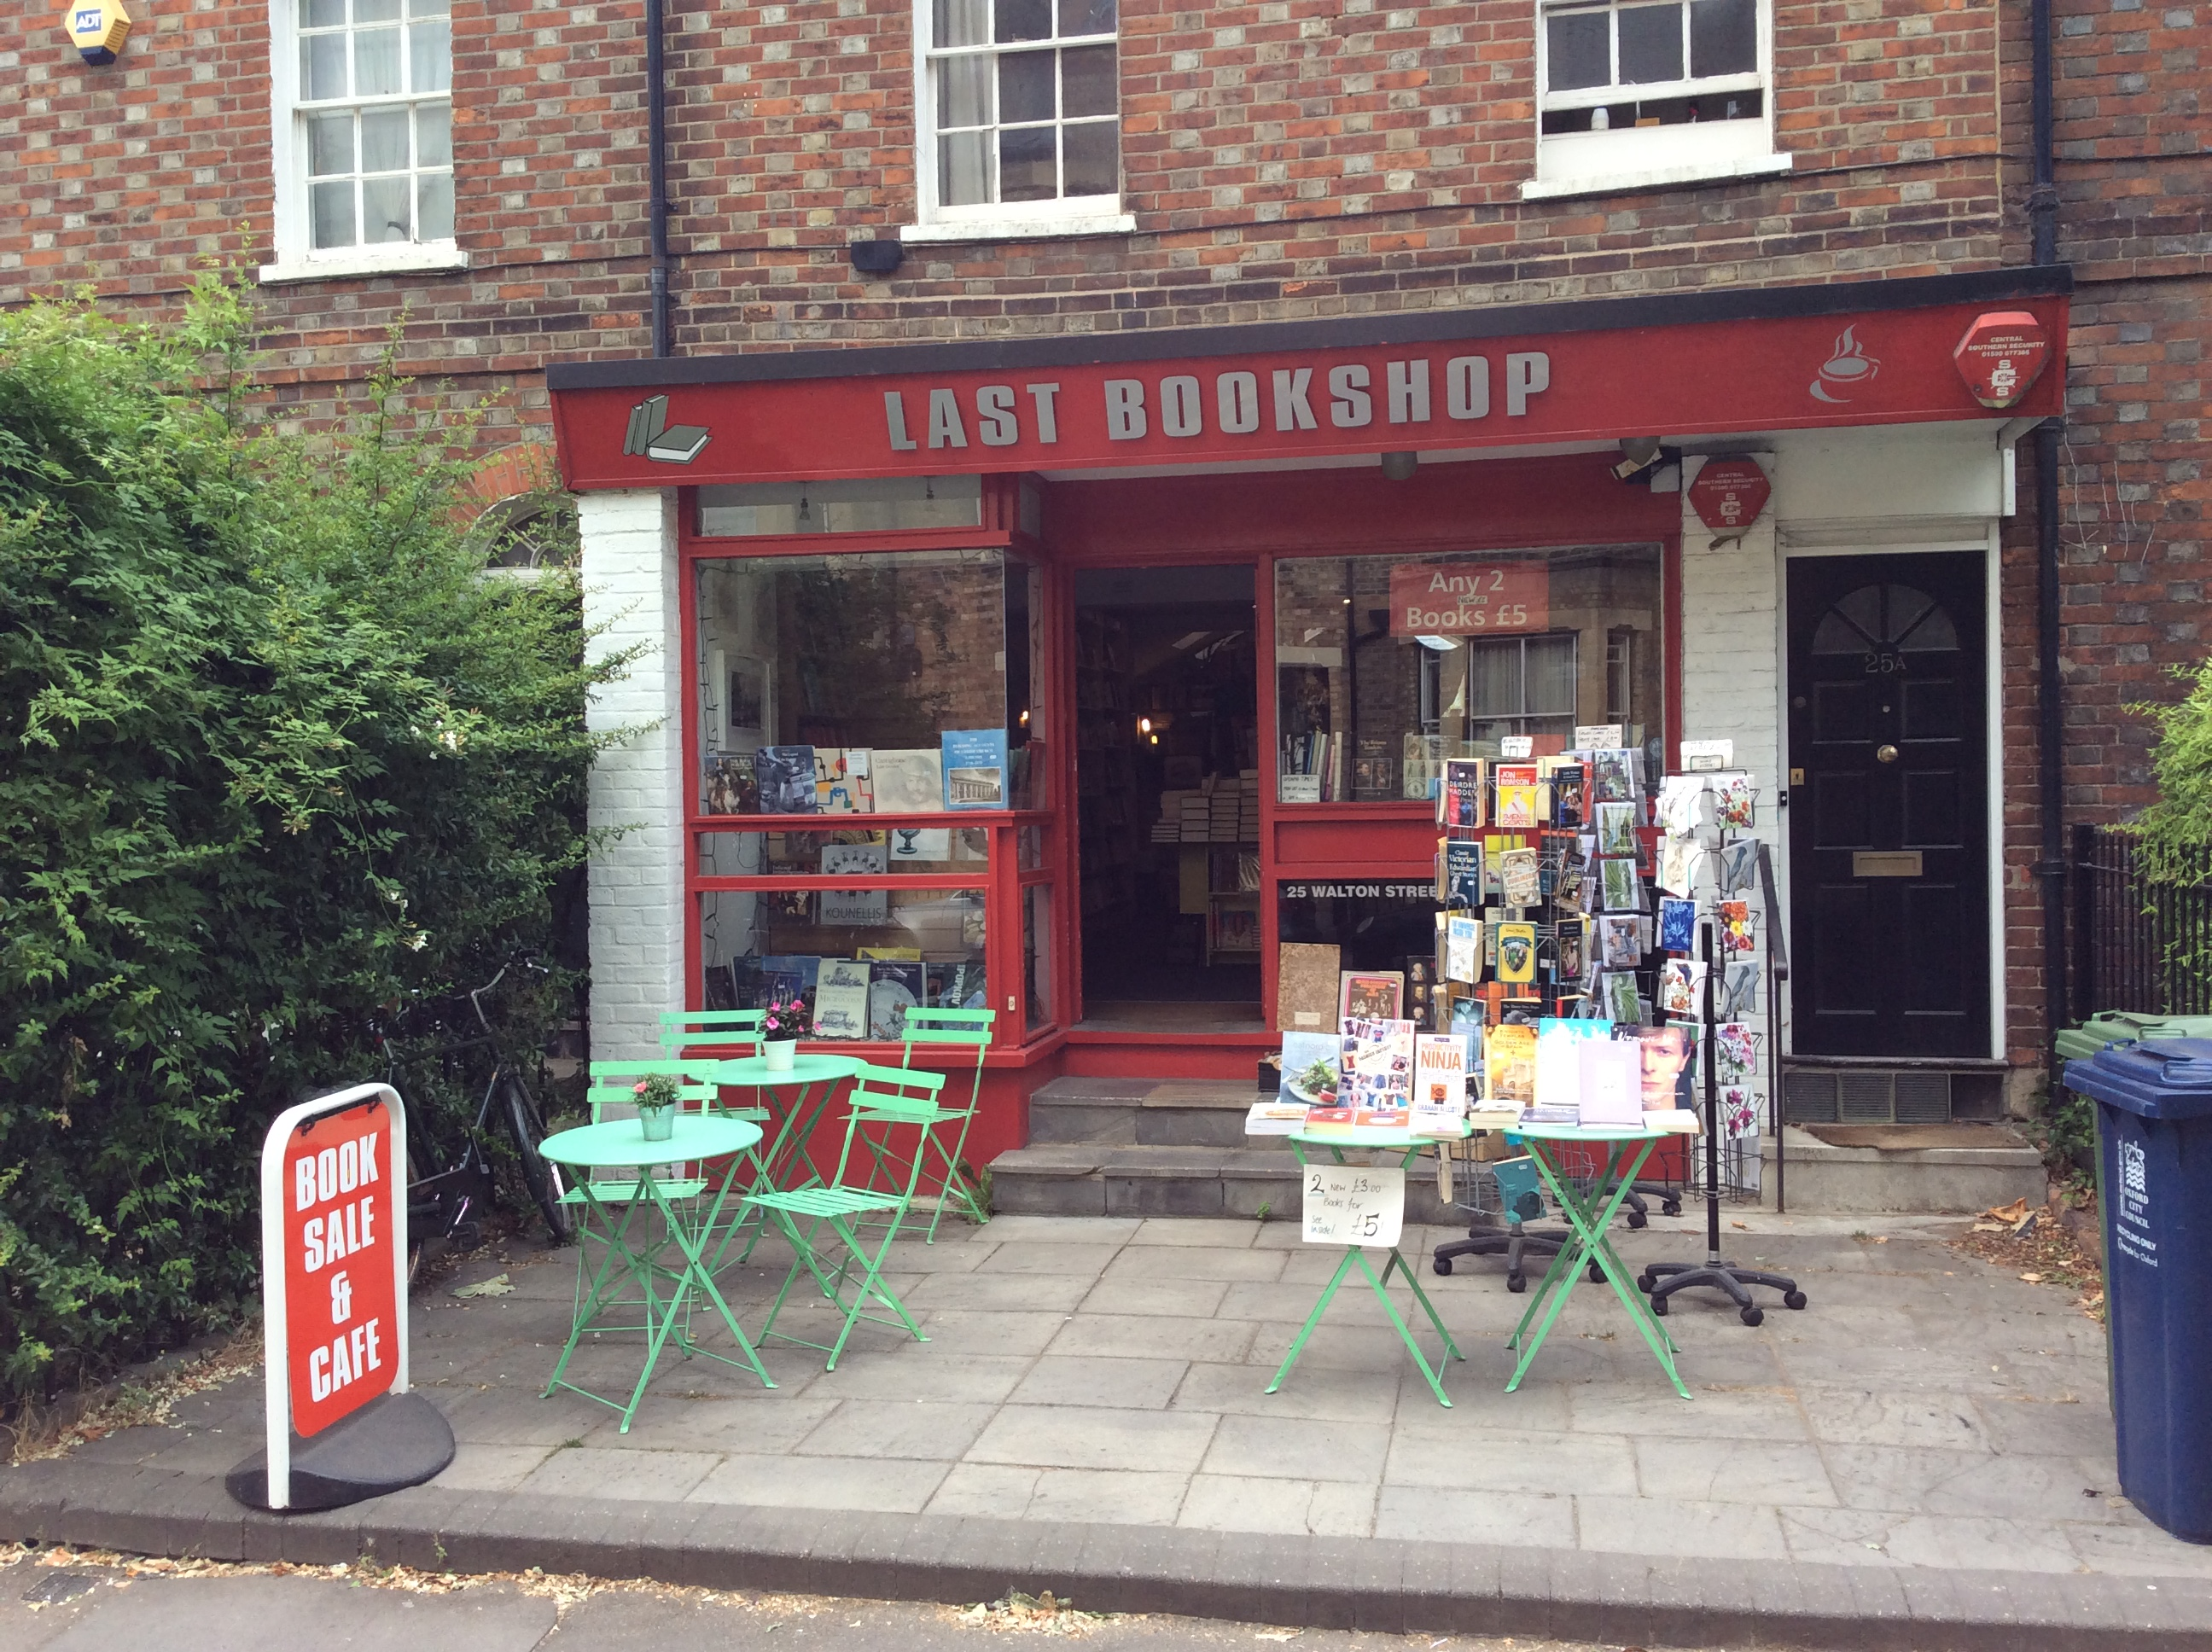 The Last Bookshop Daily Info Daily Info